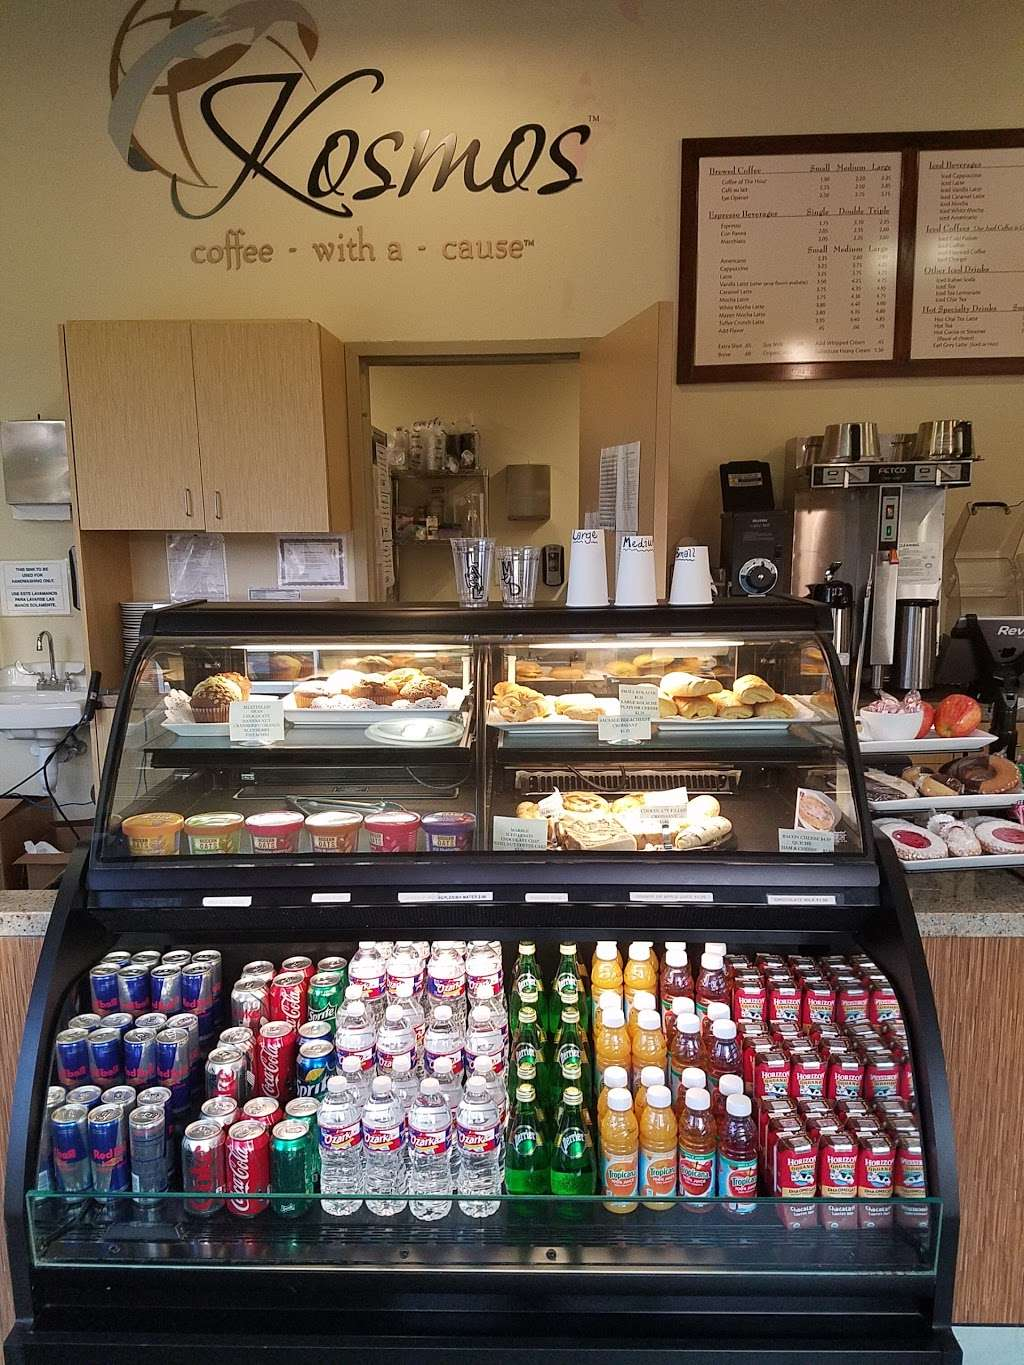 Kosmos Coffee Shop (Fellowship Church) - cafe  | Photo 4 of 10 | Address: 22765 Westheimer Pkwy, Katy, TX 77450, USA | Phone: (281) 395-4001